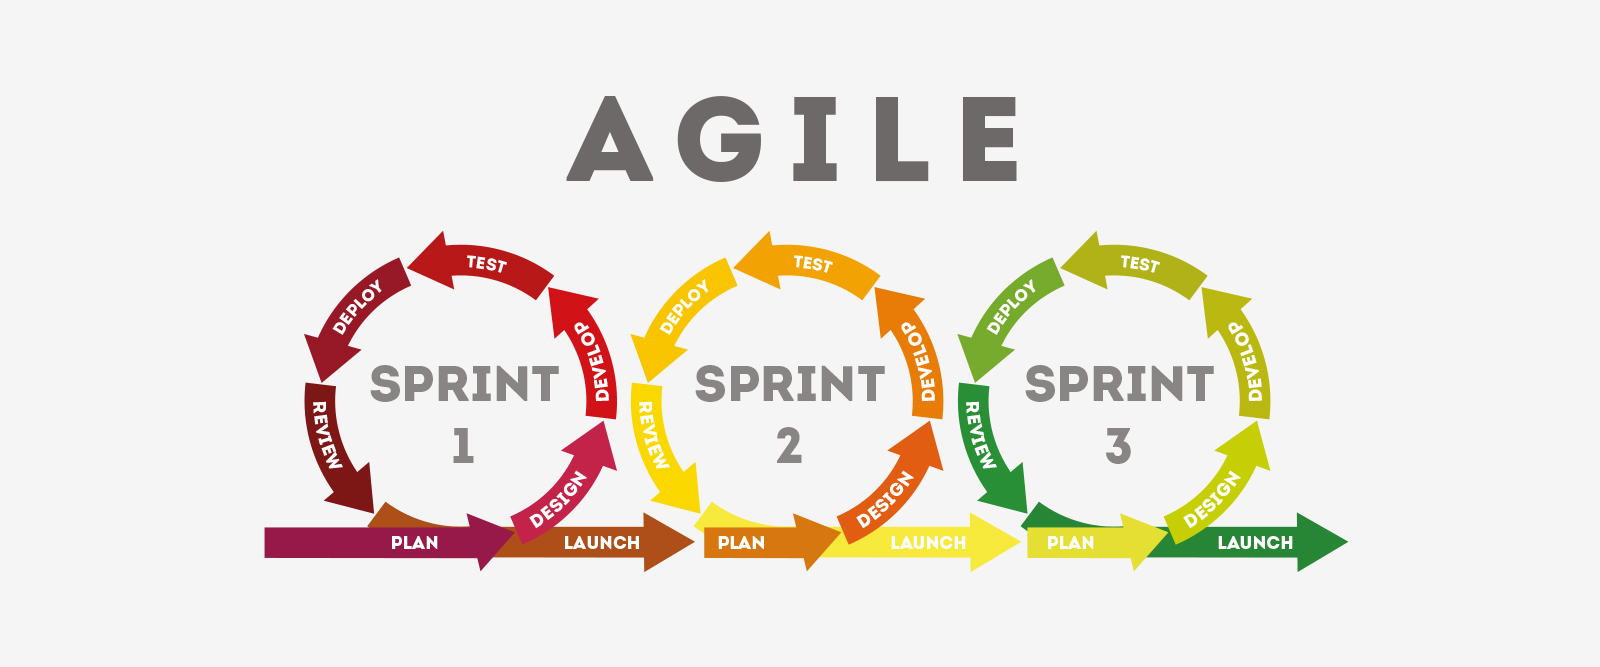 Agile Scrum Foundation training (Exin)